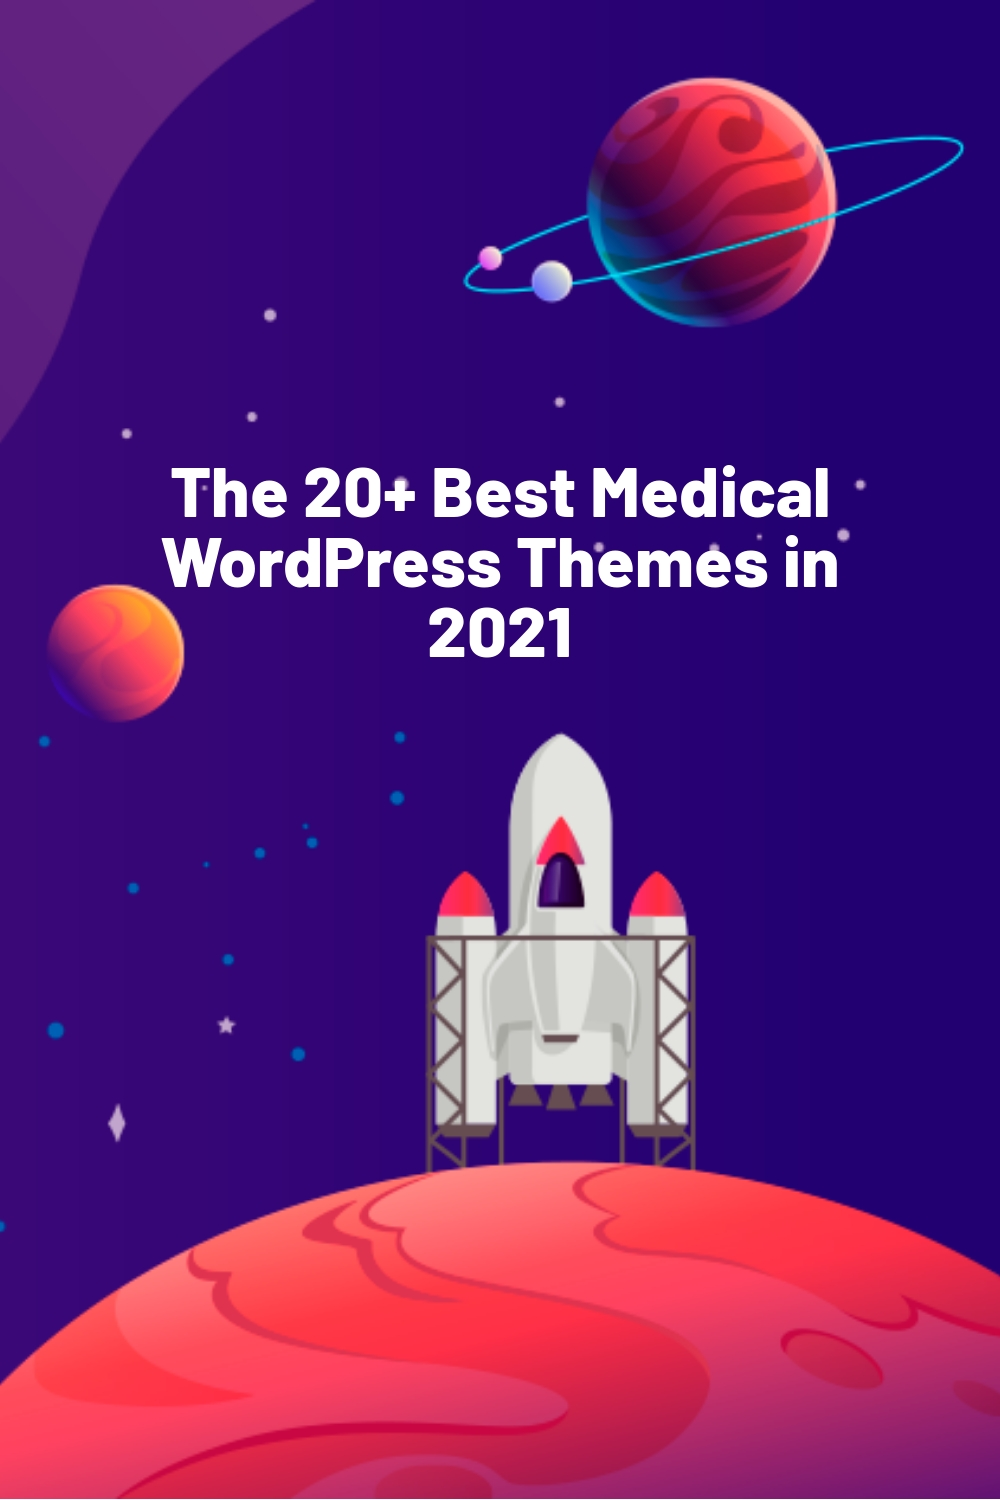 The 20+ Best Medical WordPress Themes in 2021